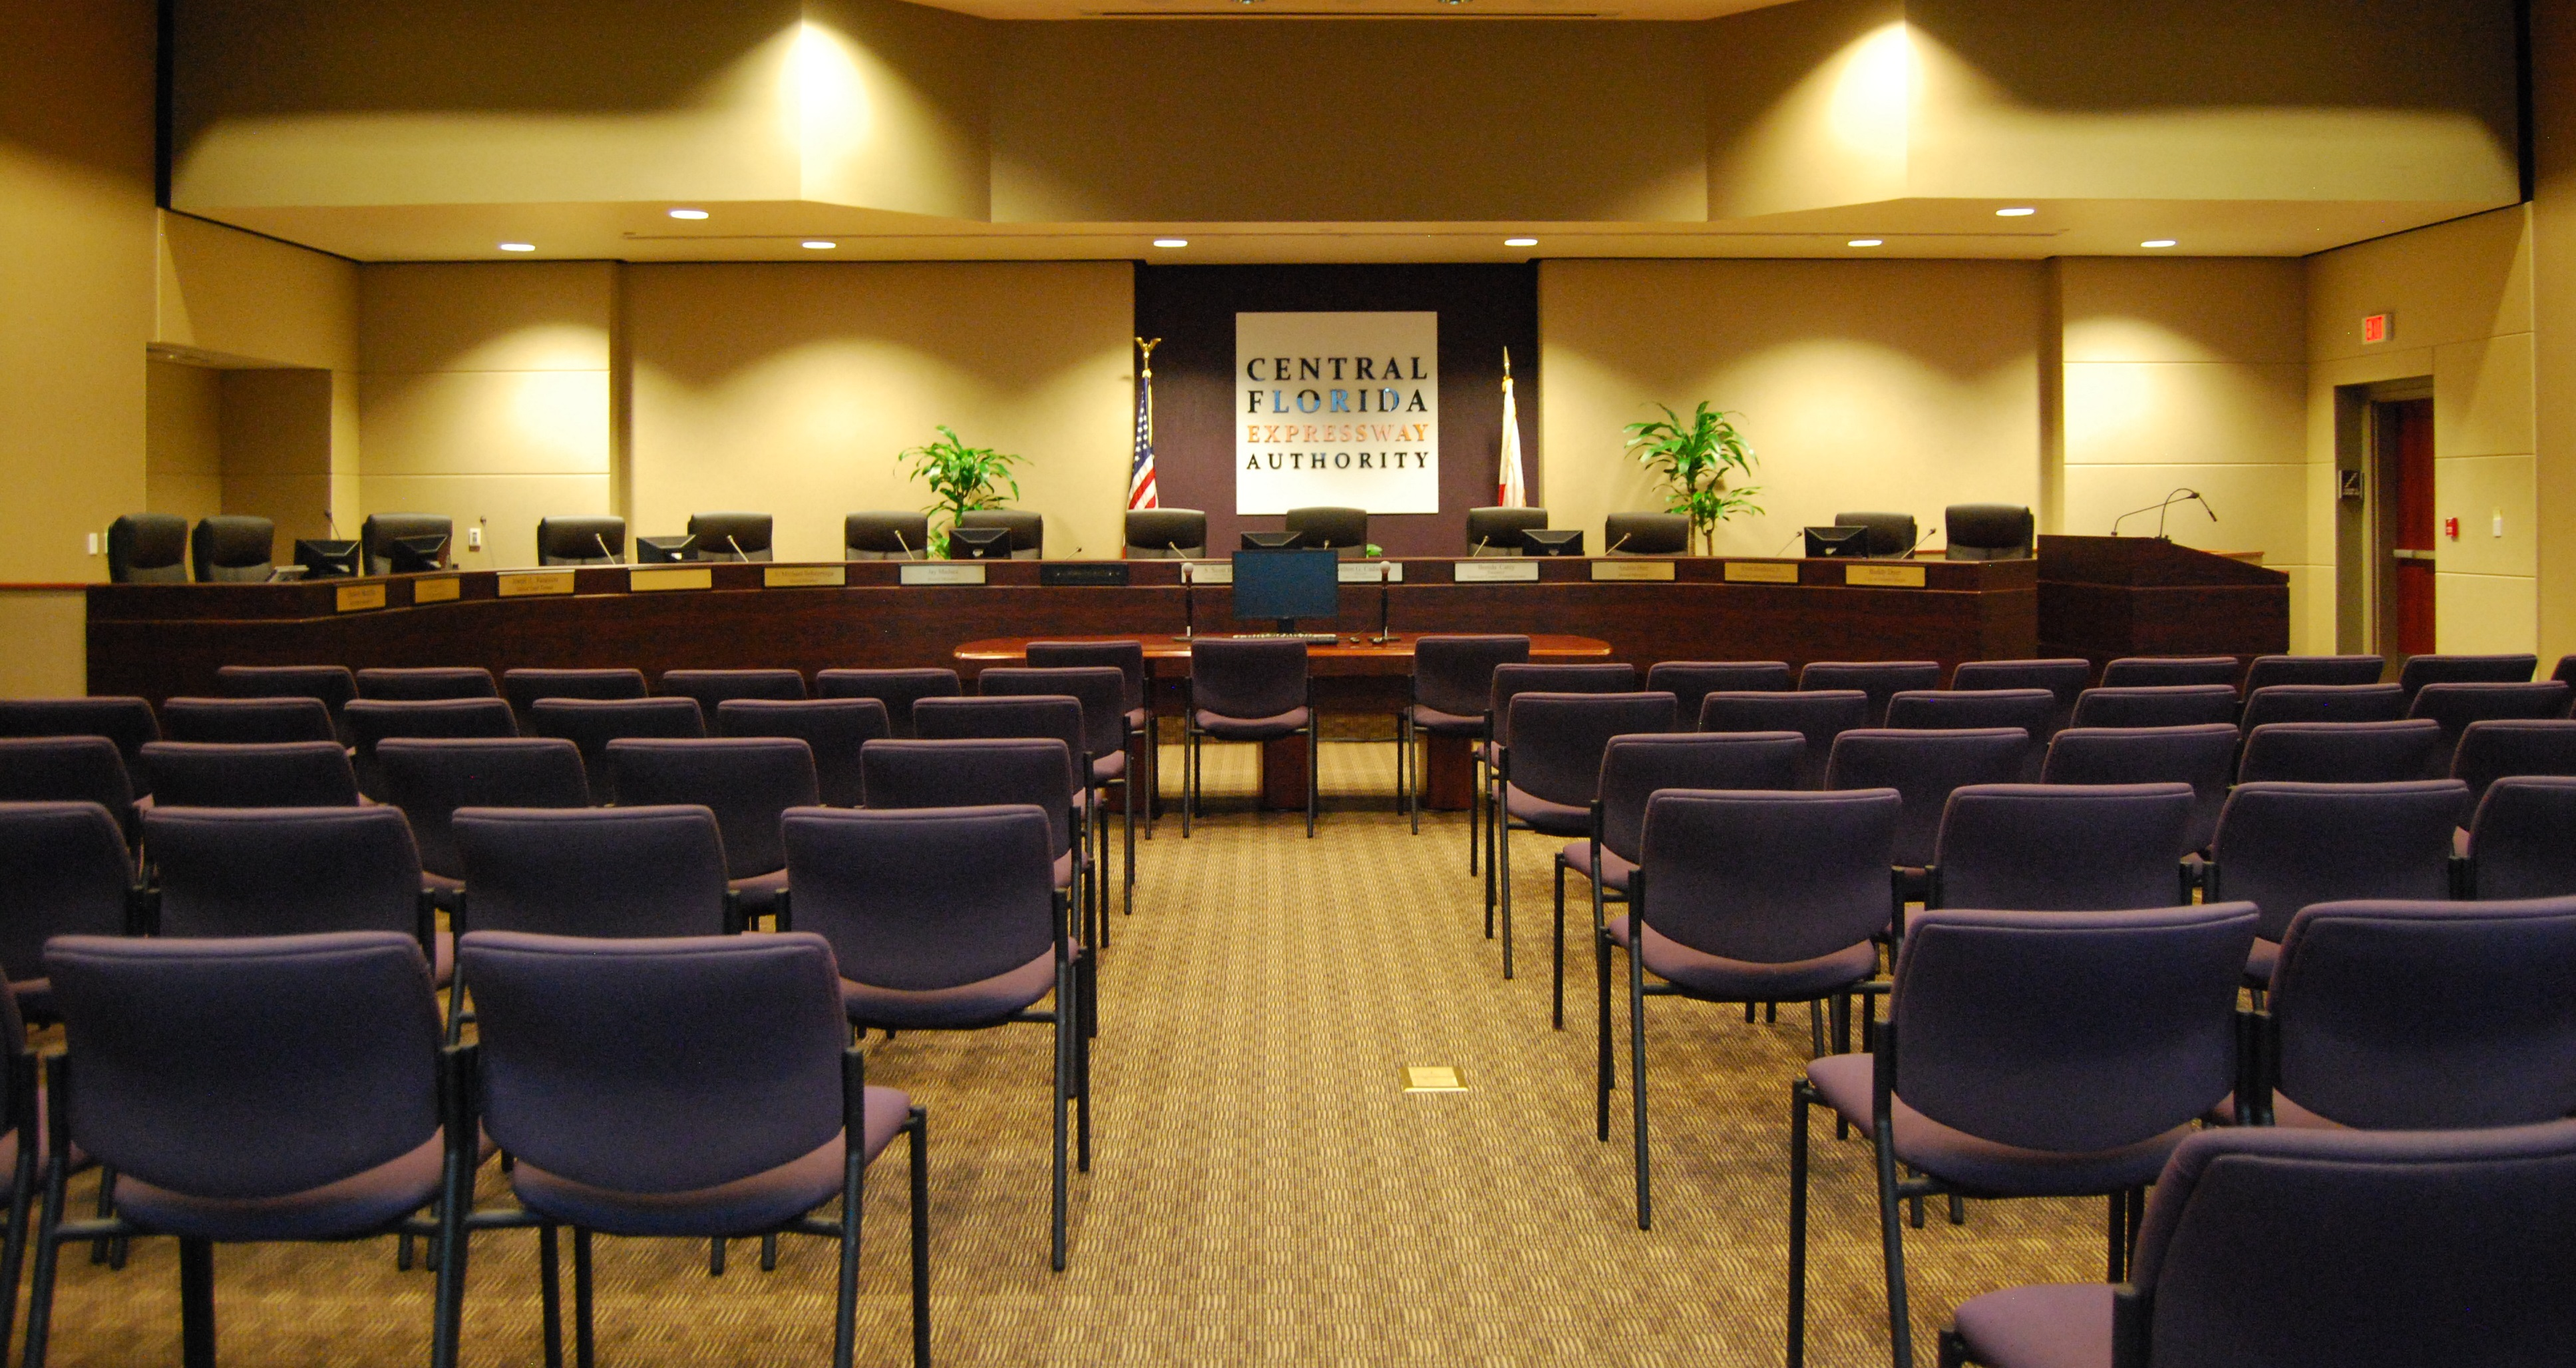 Central Florida Expressway Authority Board Room